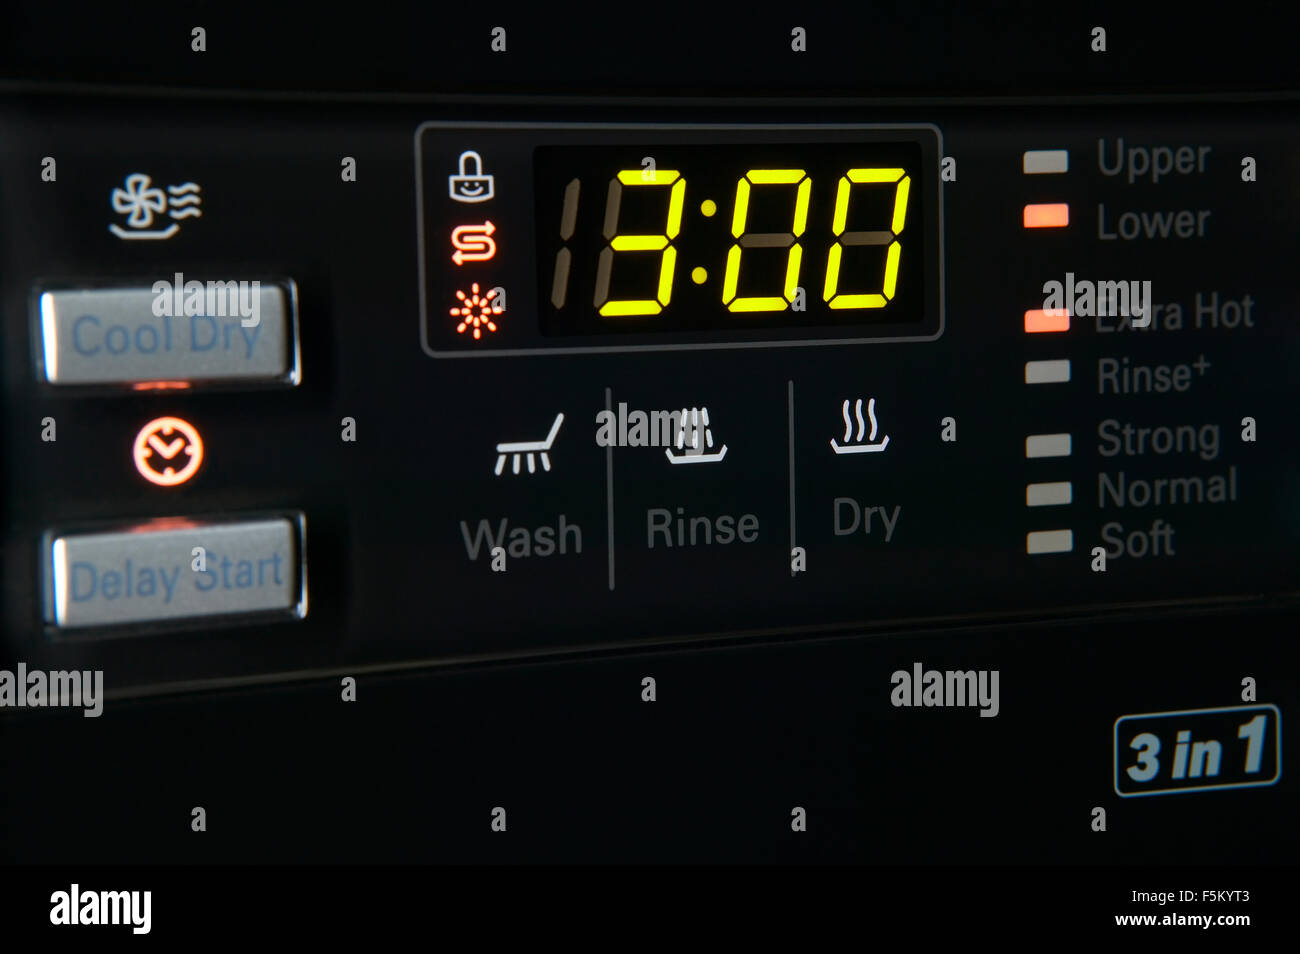 Washing Machine Timer Stock Photos Electronic Circuit For Close Up Of A Modern Control Pannel With And Options Low Key